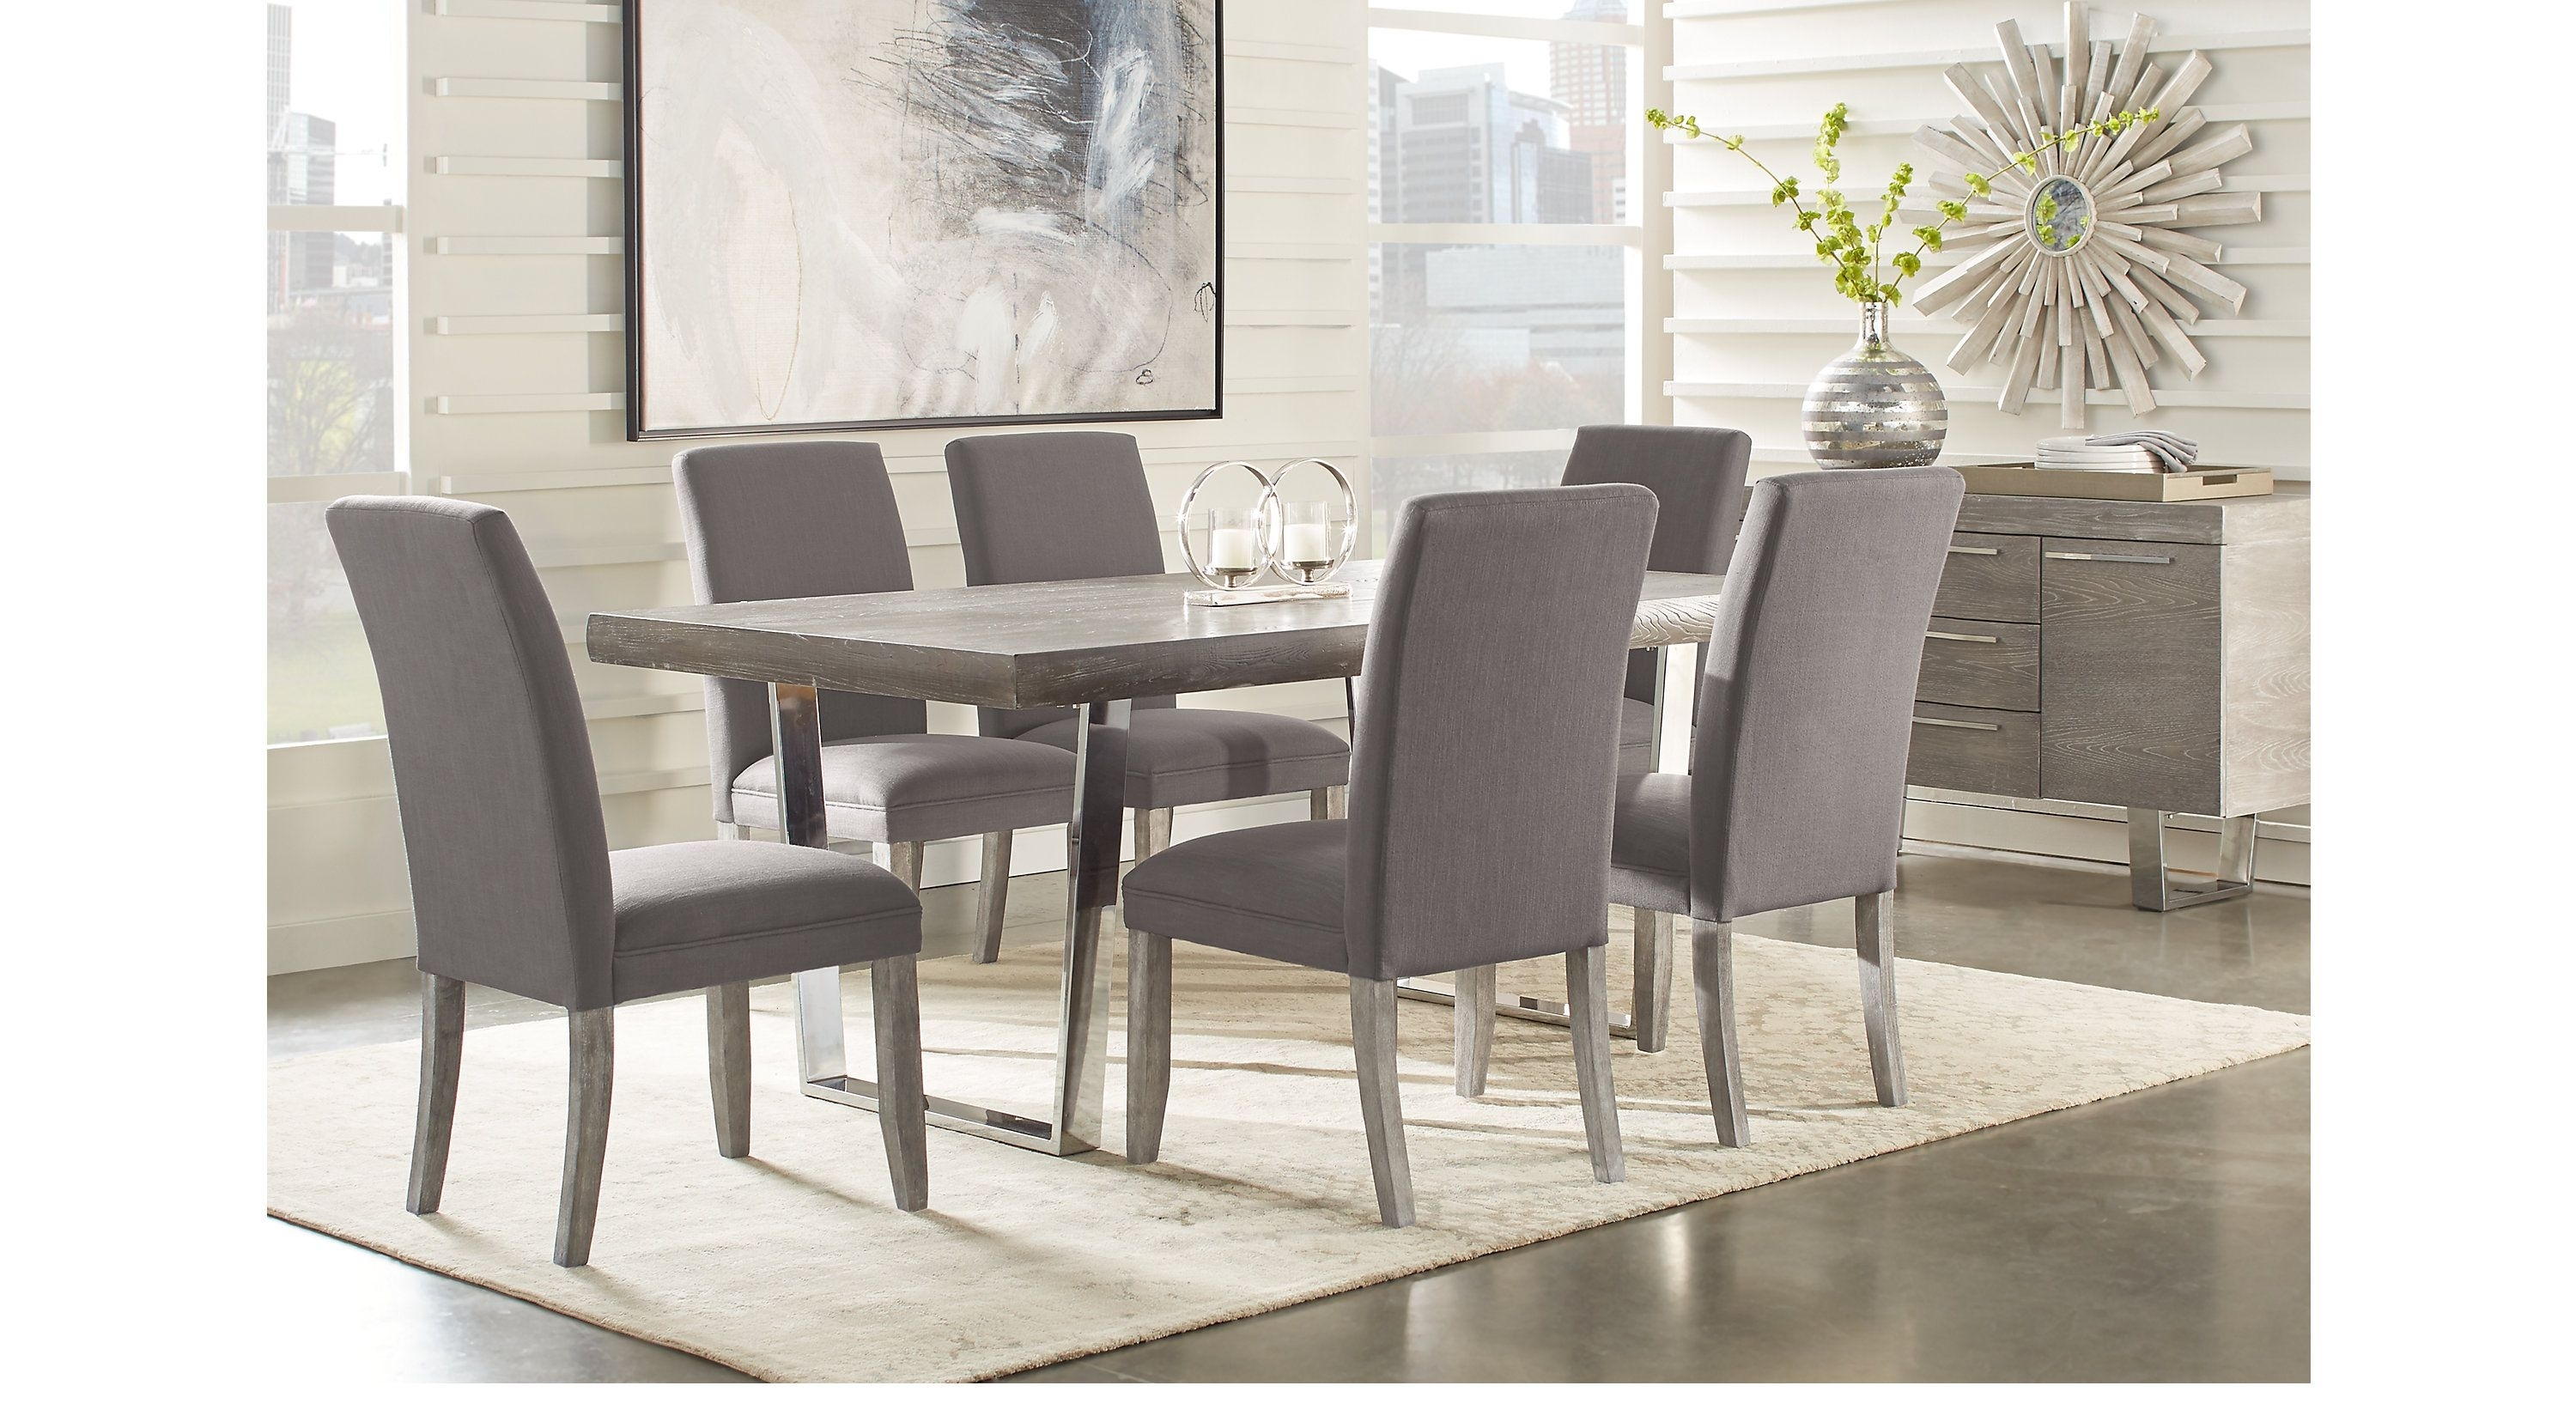 Besteneer Rectangular Dining Room Table Dark Gray – Signat Throughout Latest Jaxon Grey 5 Piece Extension Counter Sets With Fabric Stools (Image 1 of 20)